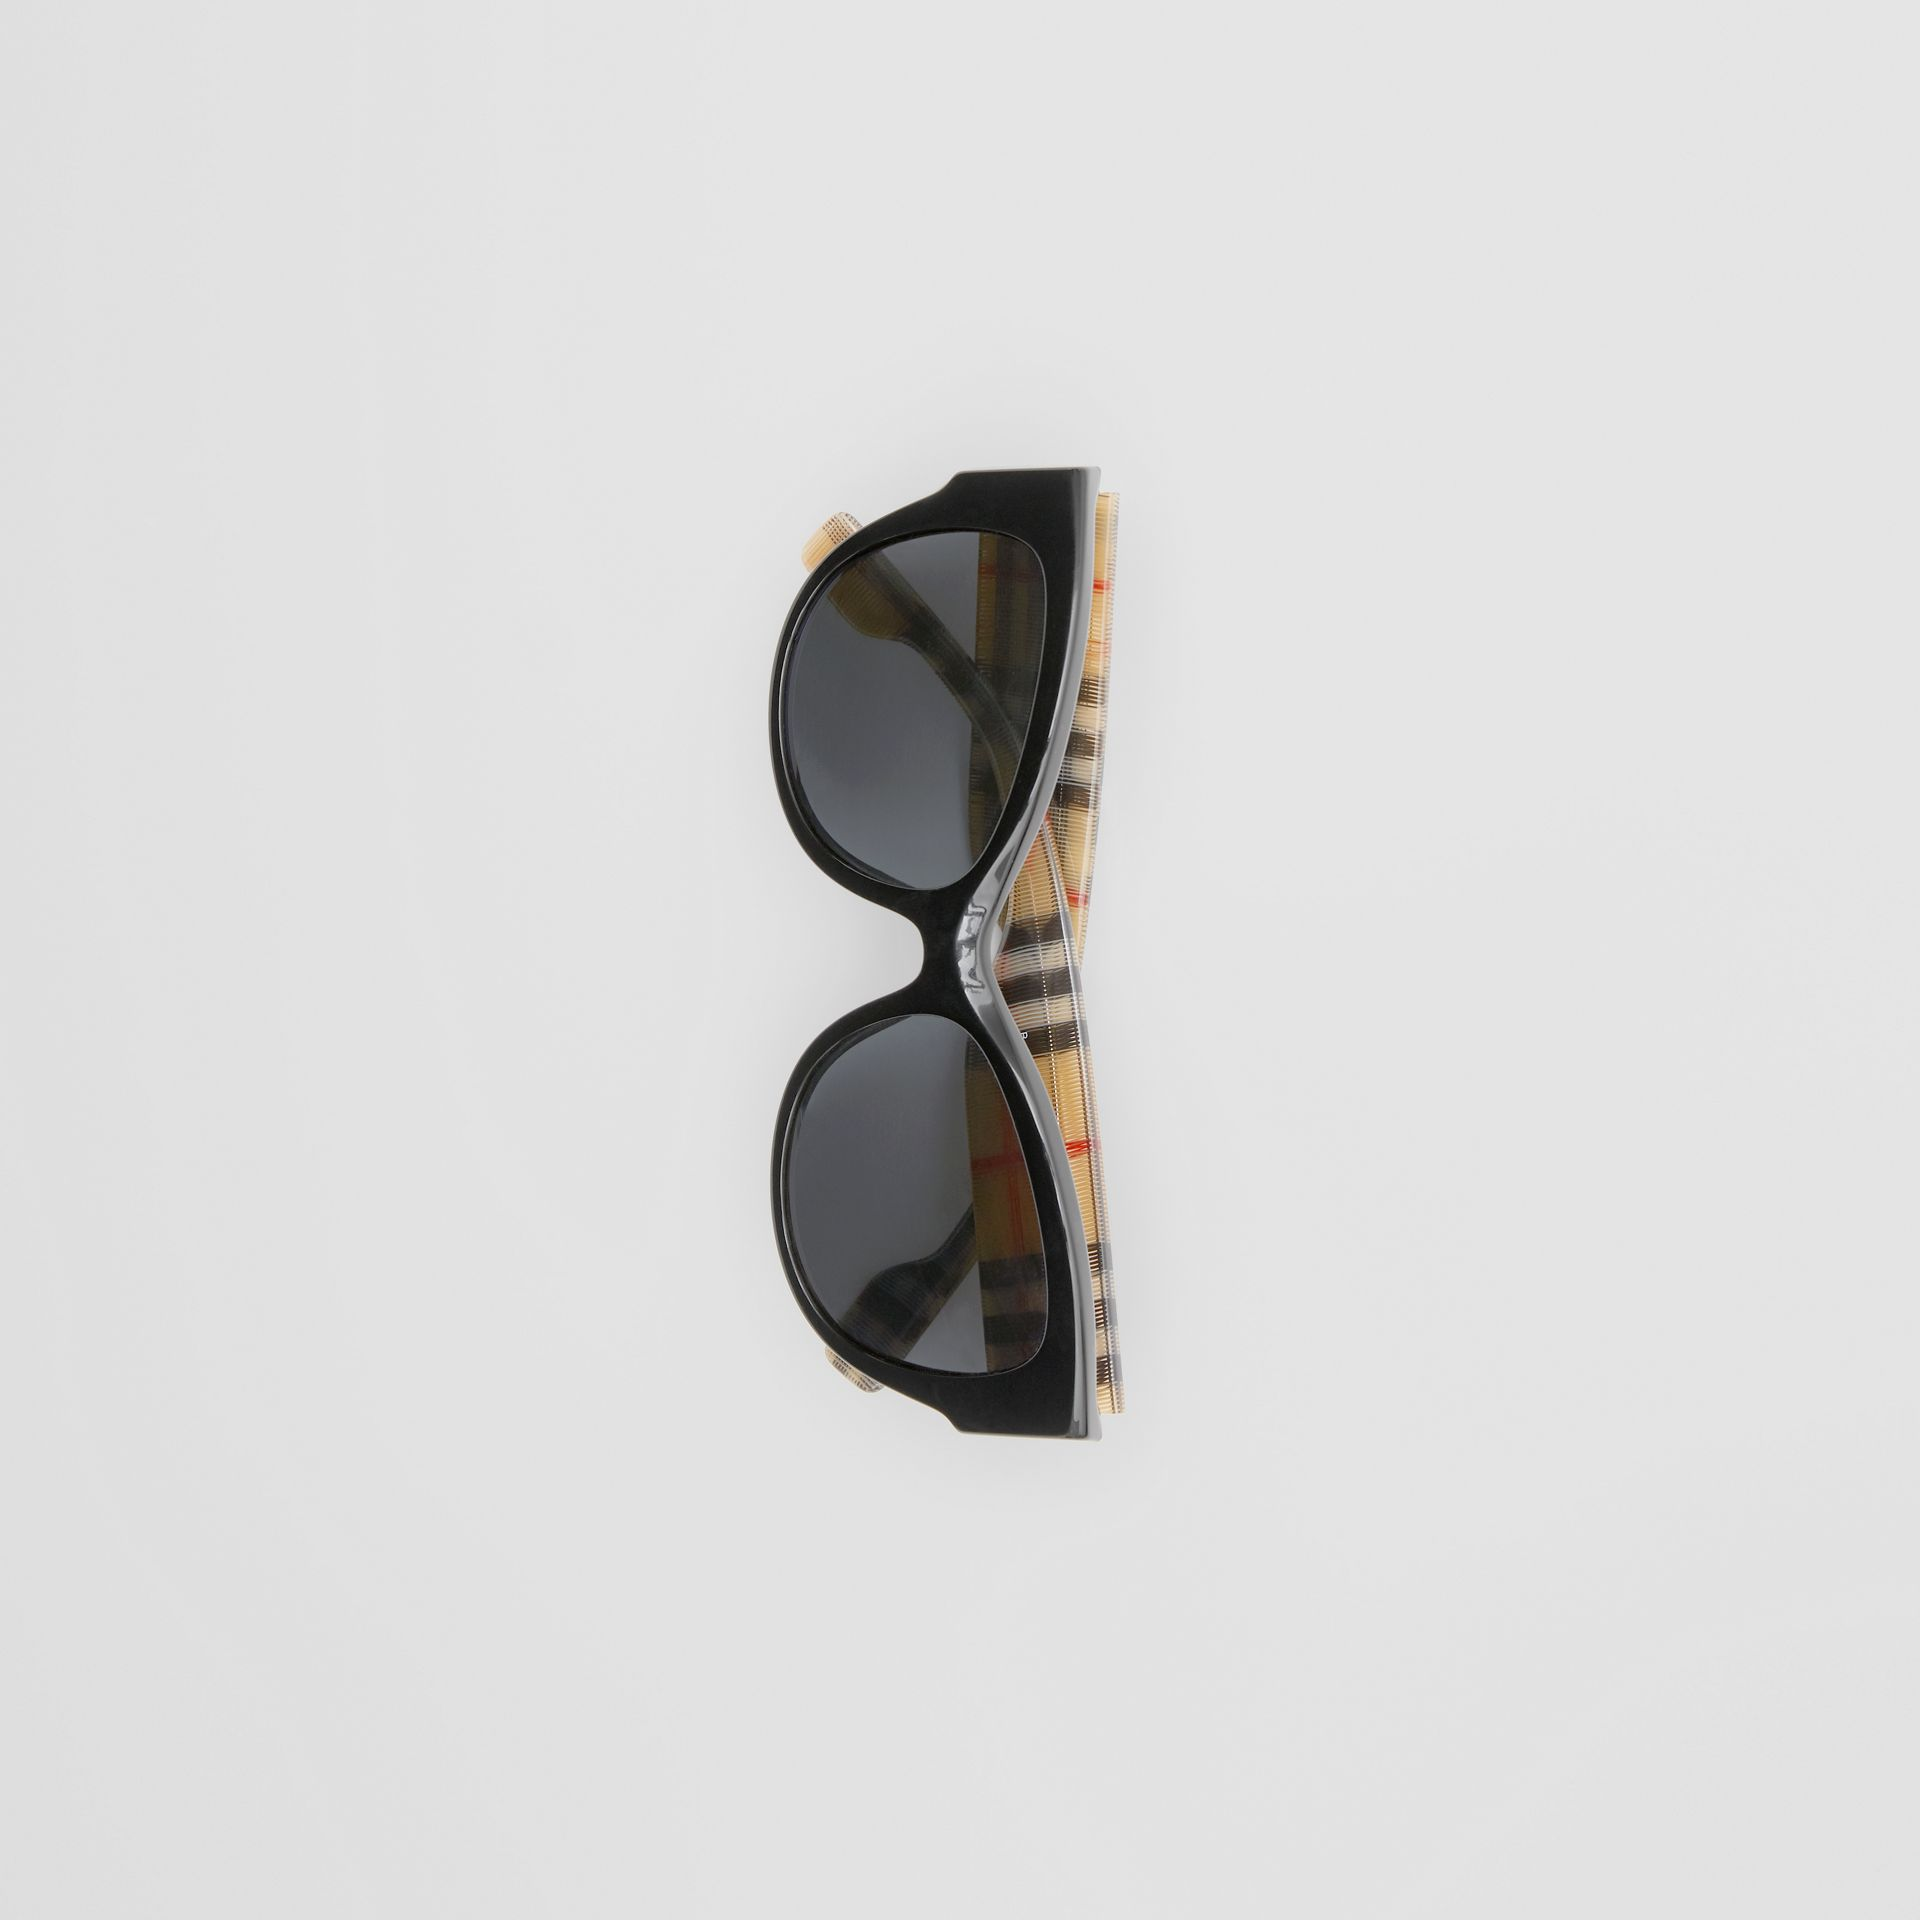 Vintage Check Detail Butterfly Frame Sunglasses in Black / Beige - Women | Burberry - gallery image 3